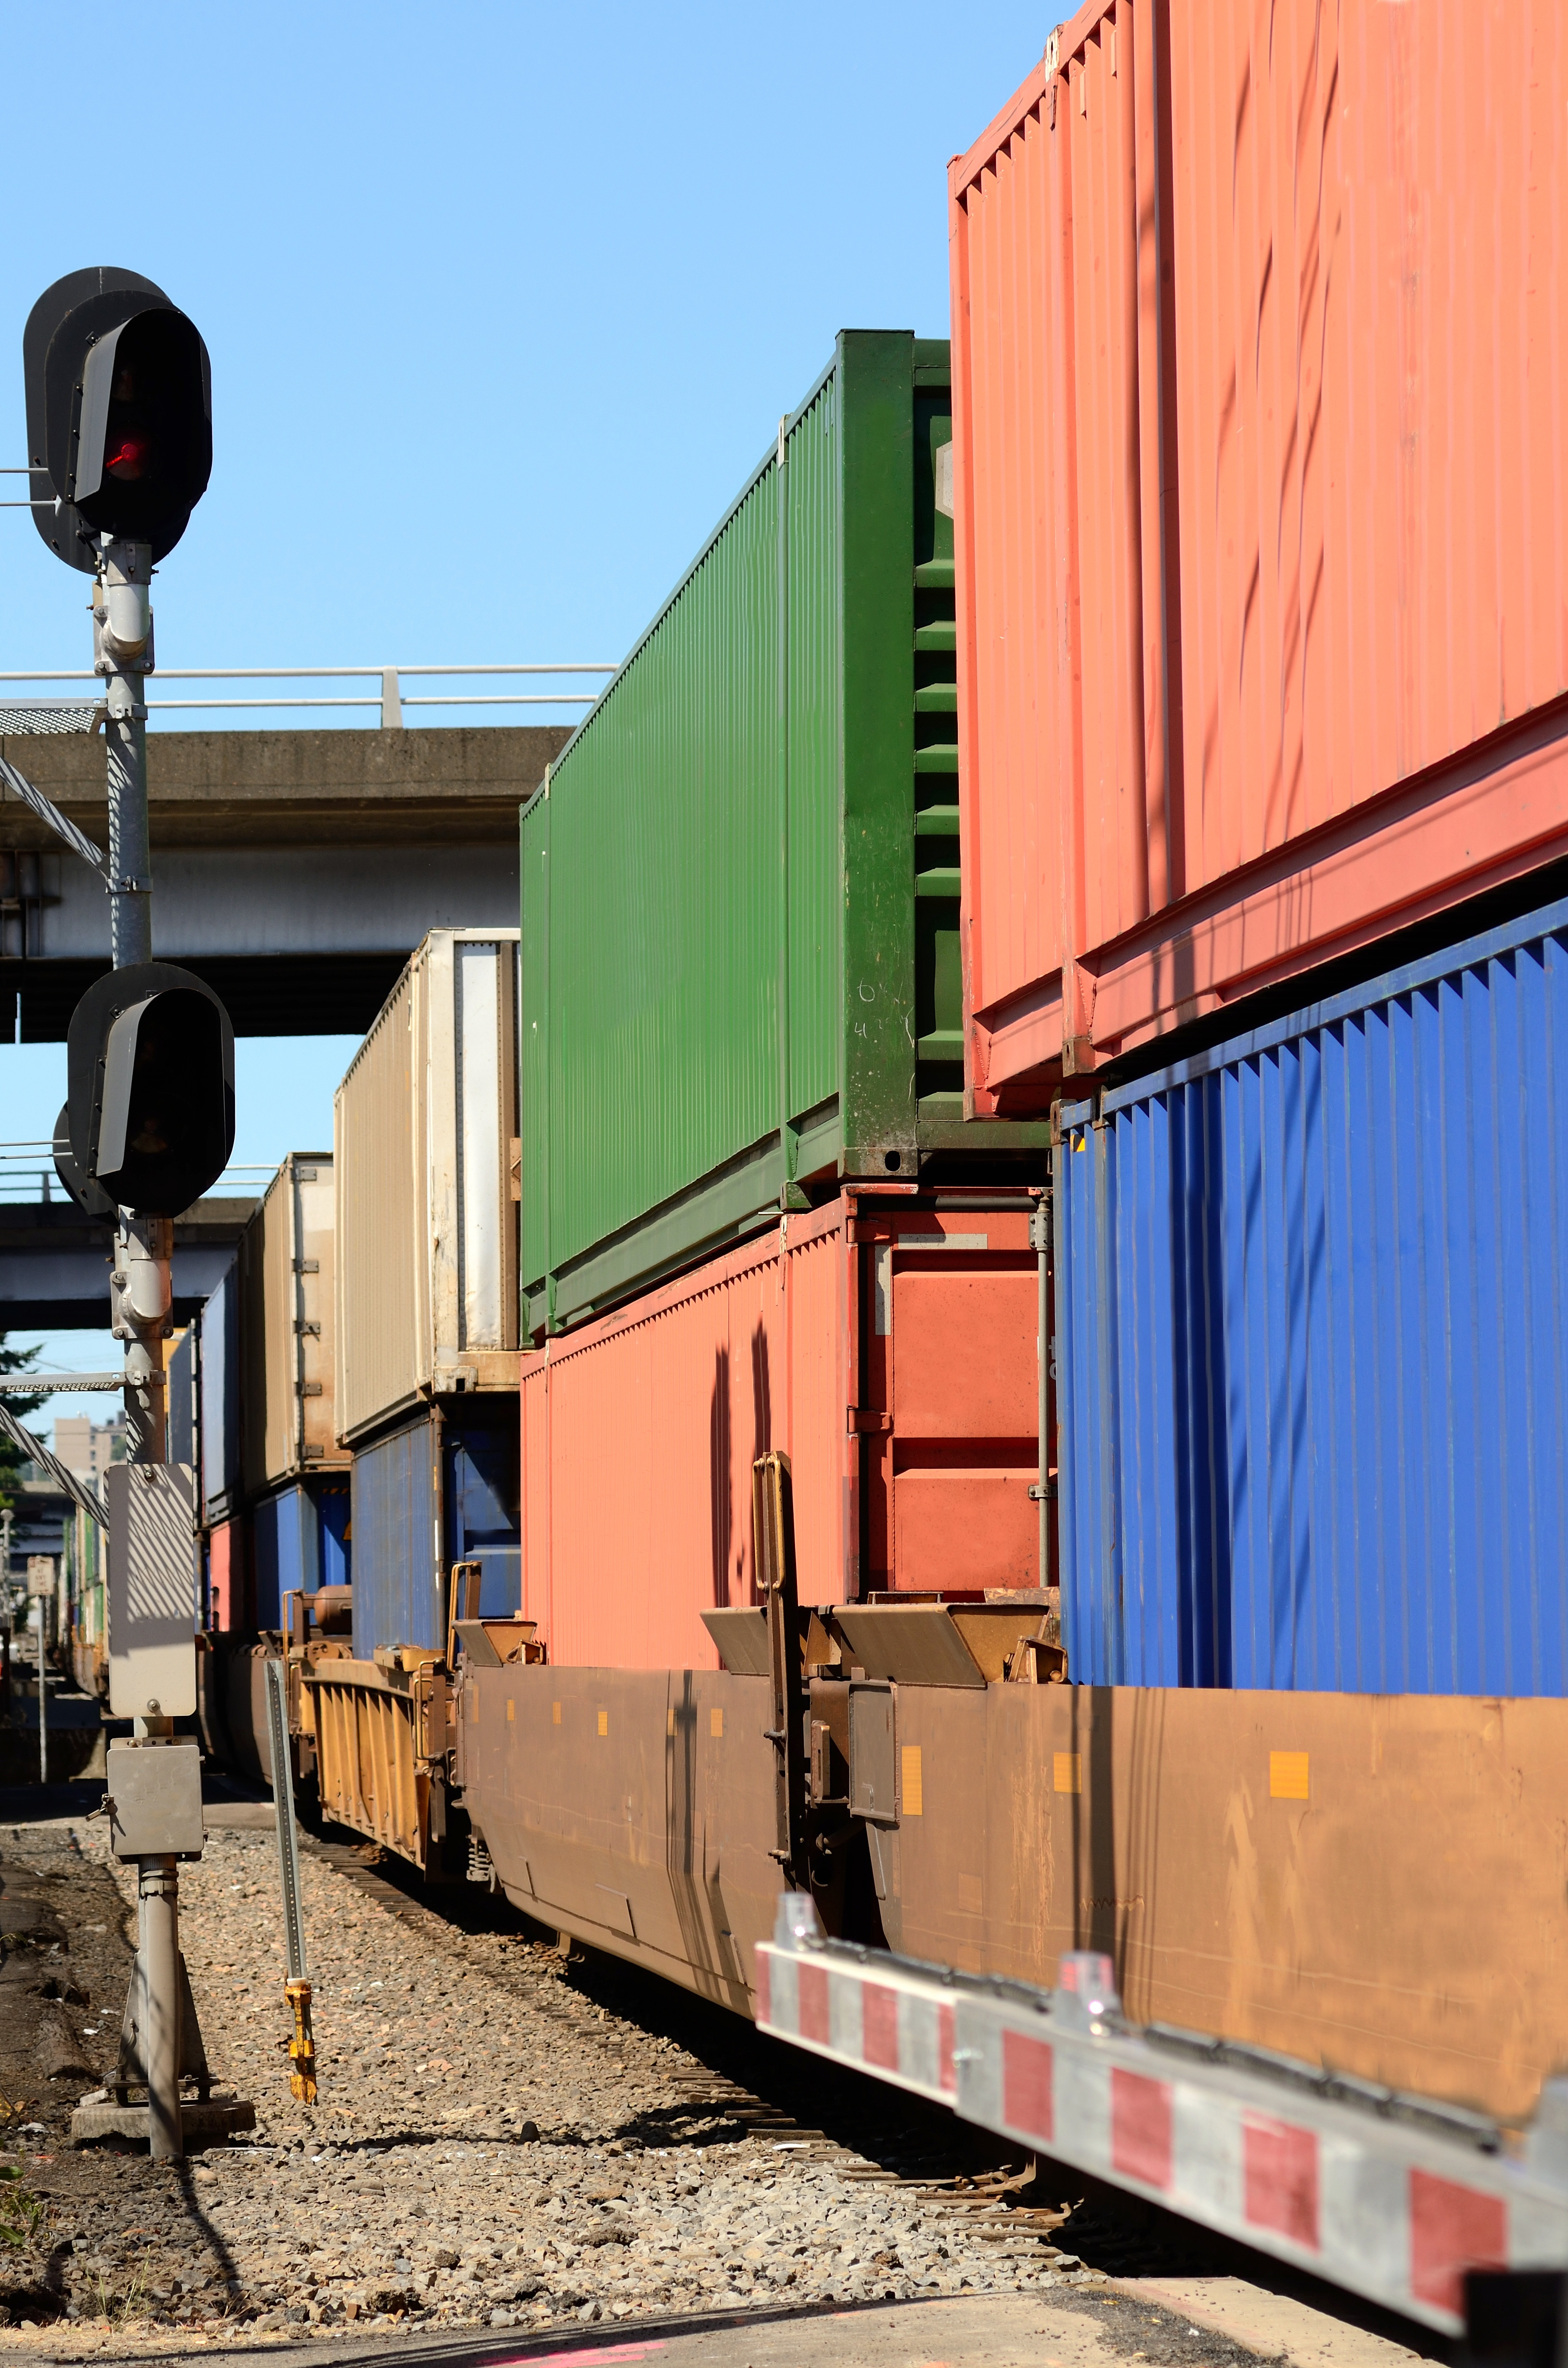 intermodal train pic